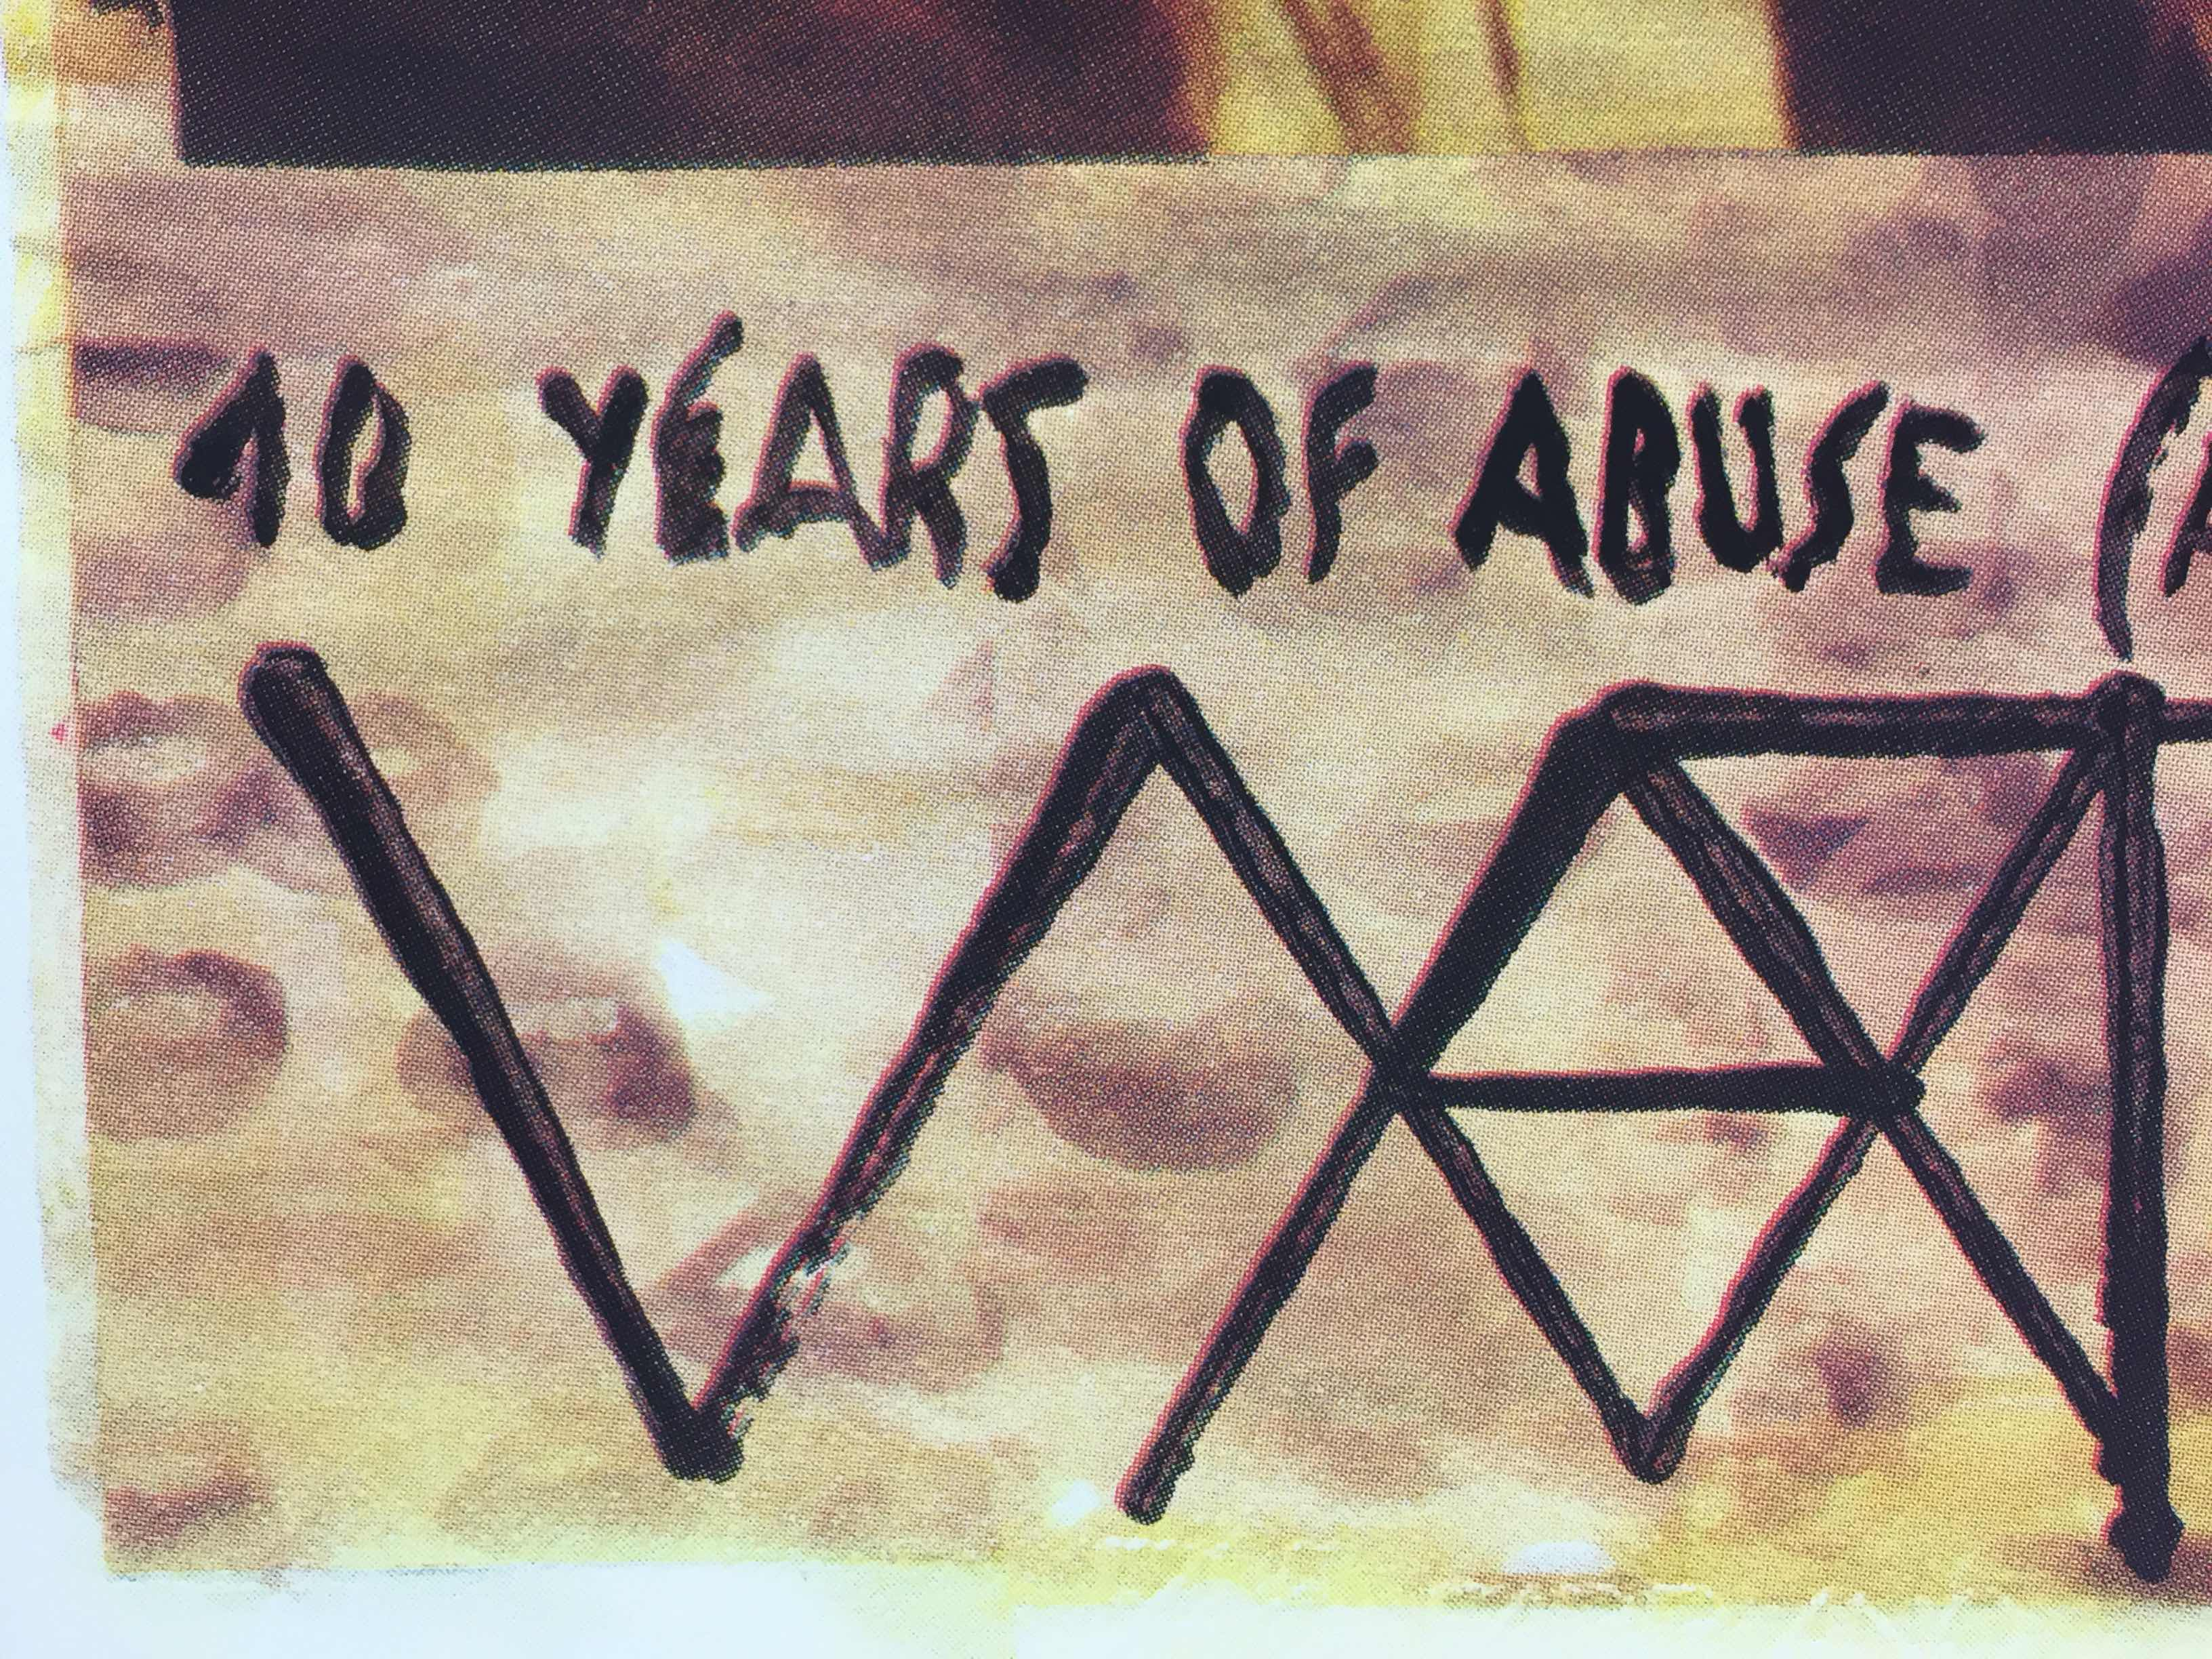 Ten years of abuse (and still broke)  -  We Are The Painter